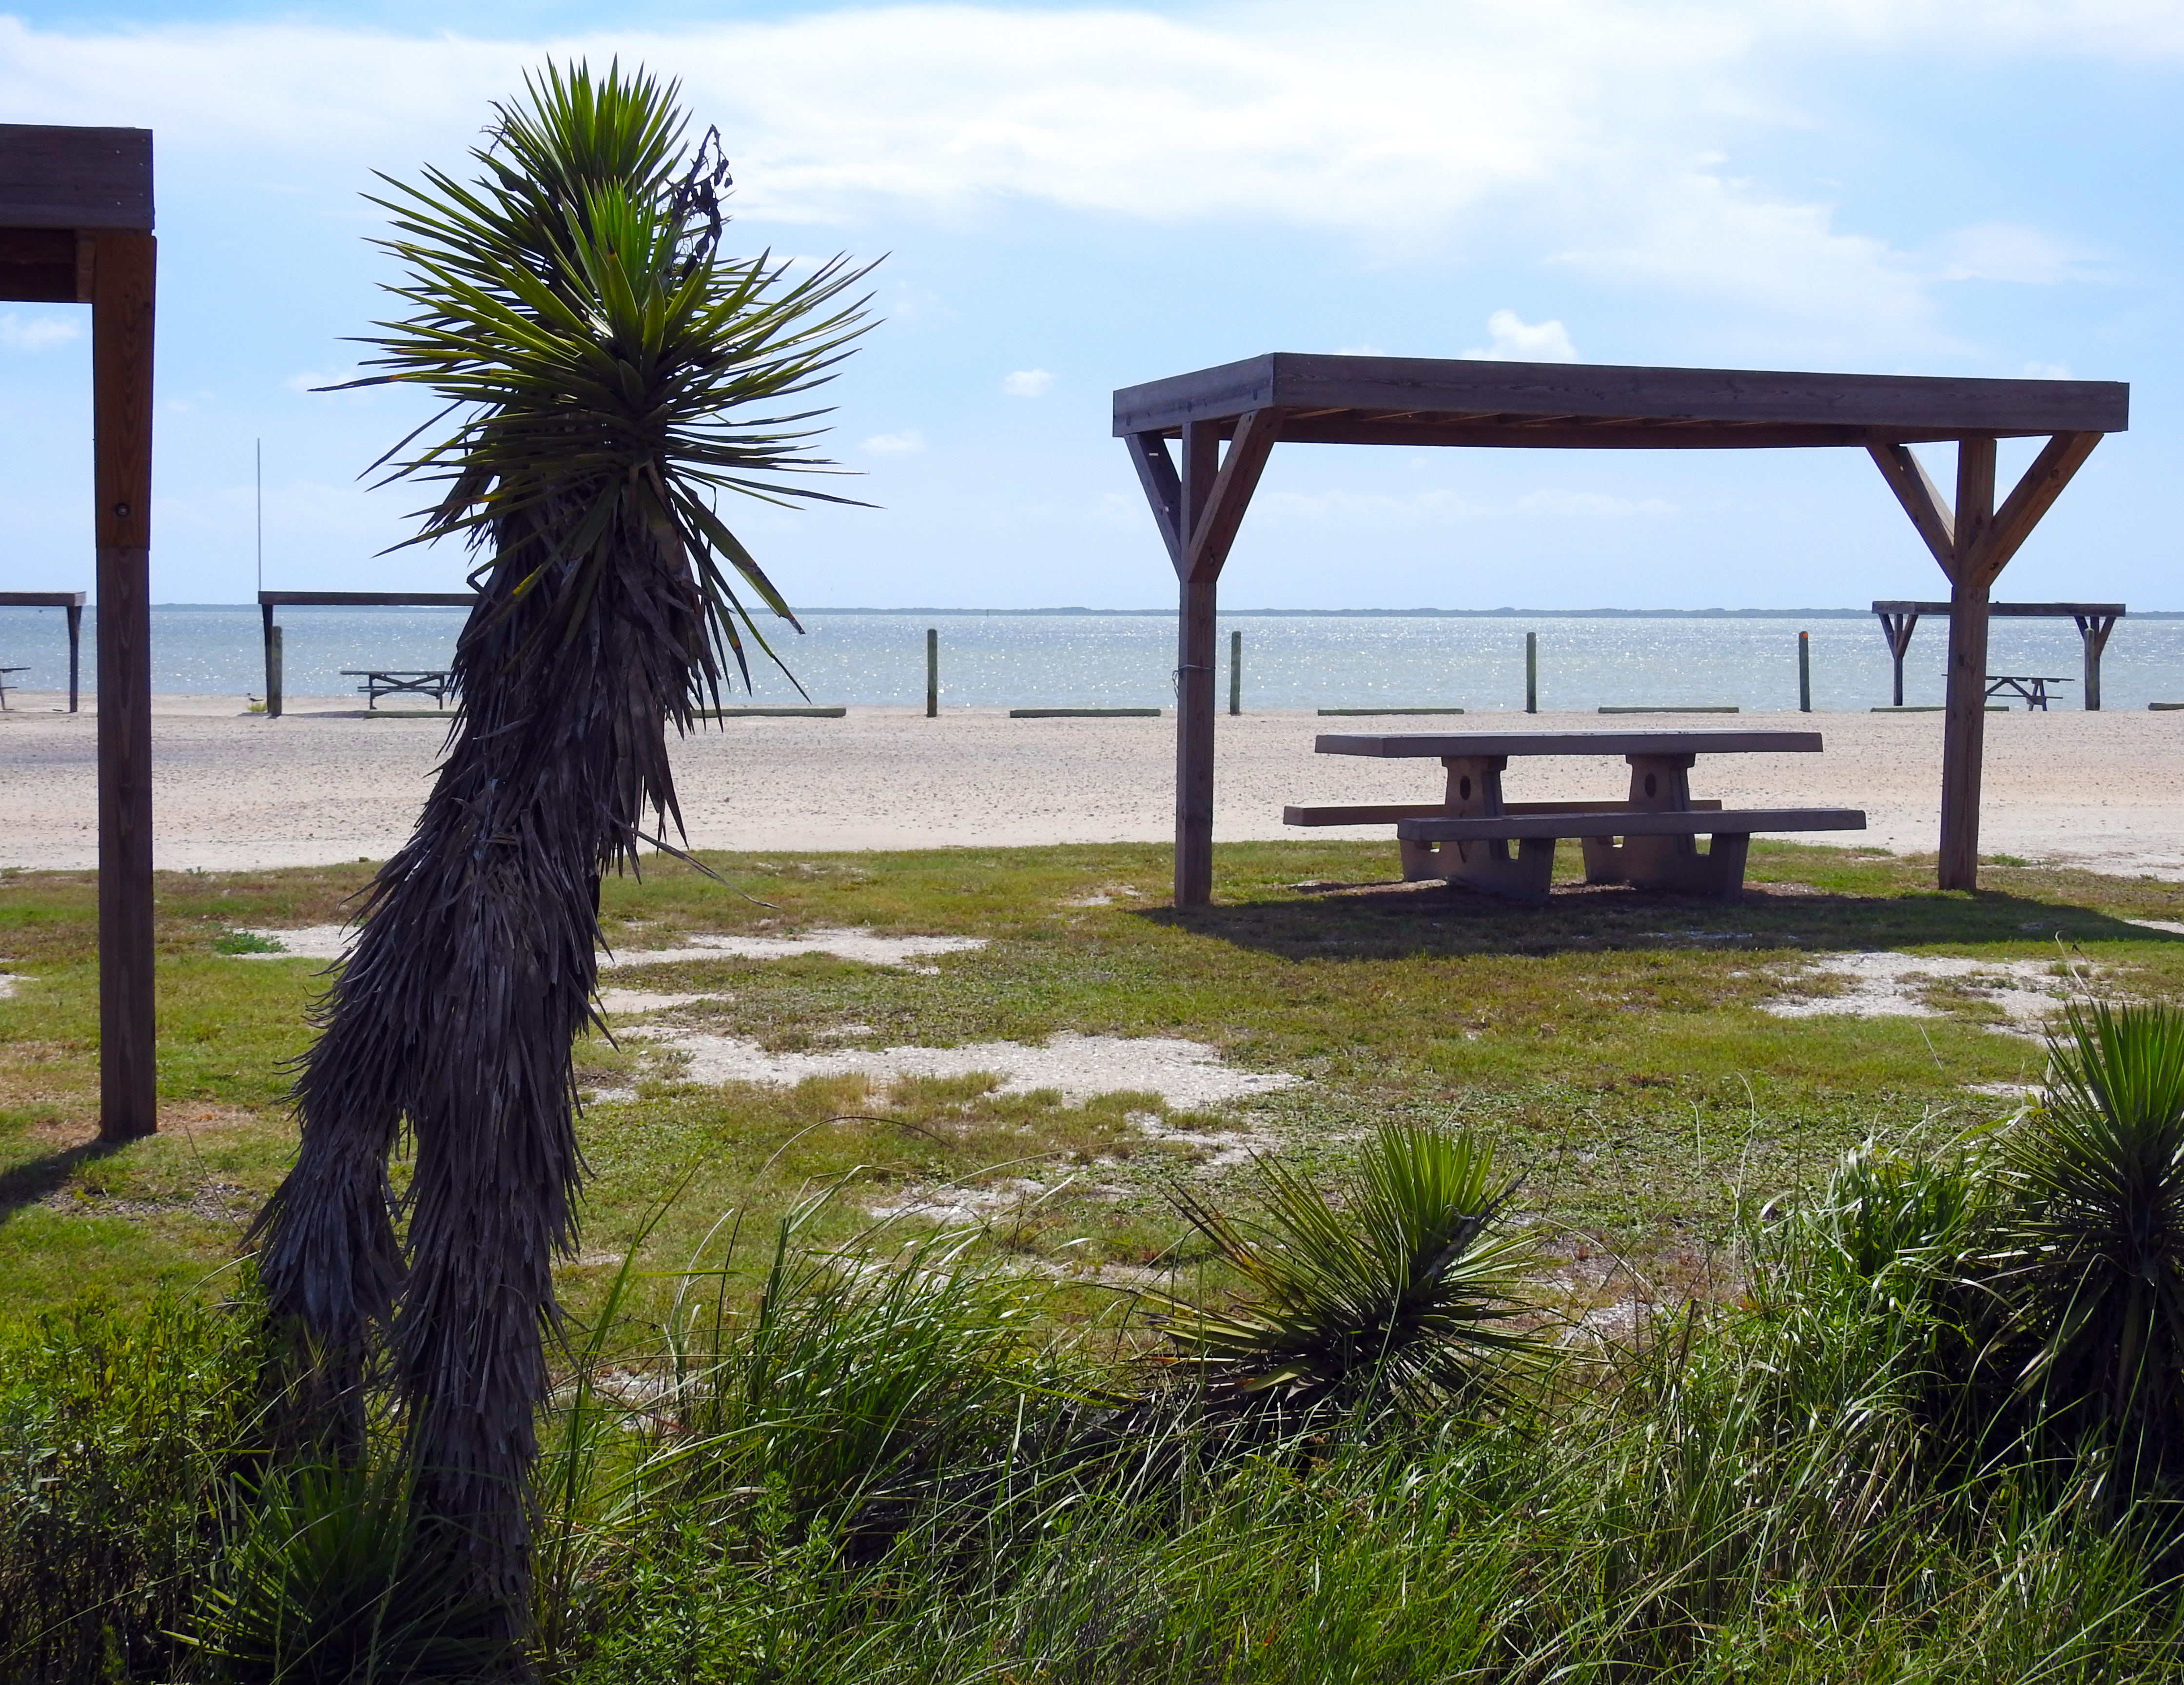 Campsite at Bird Island Basin Campground with the Laguna Madre in the background.